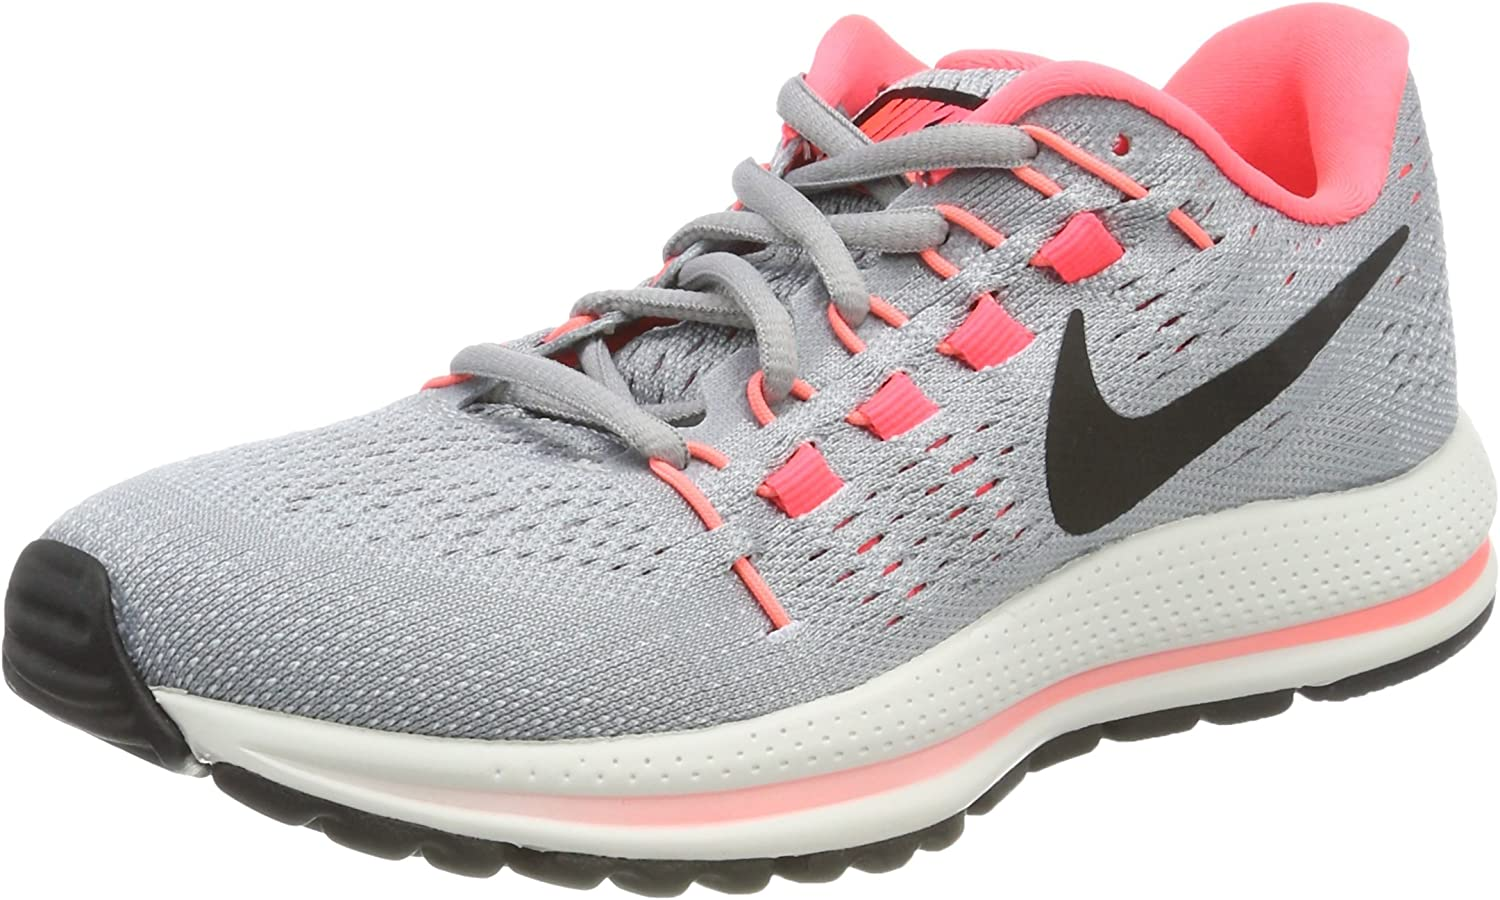 Nike W Air Zoom Vomero 12 (N), Zapatillas de Trail Running para Mujer, Gris (Wolf Grey/Black/Pure Platinum/Hot Punch 002), 43 EU: Amazon.es: Zapatos y complementos